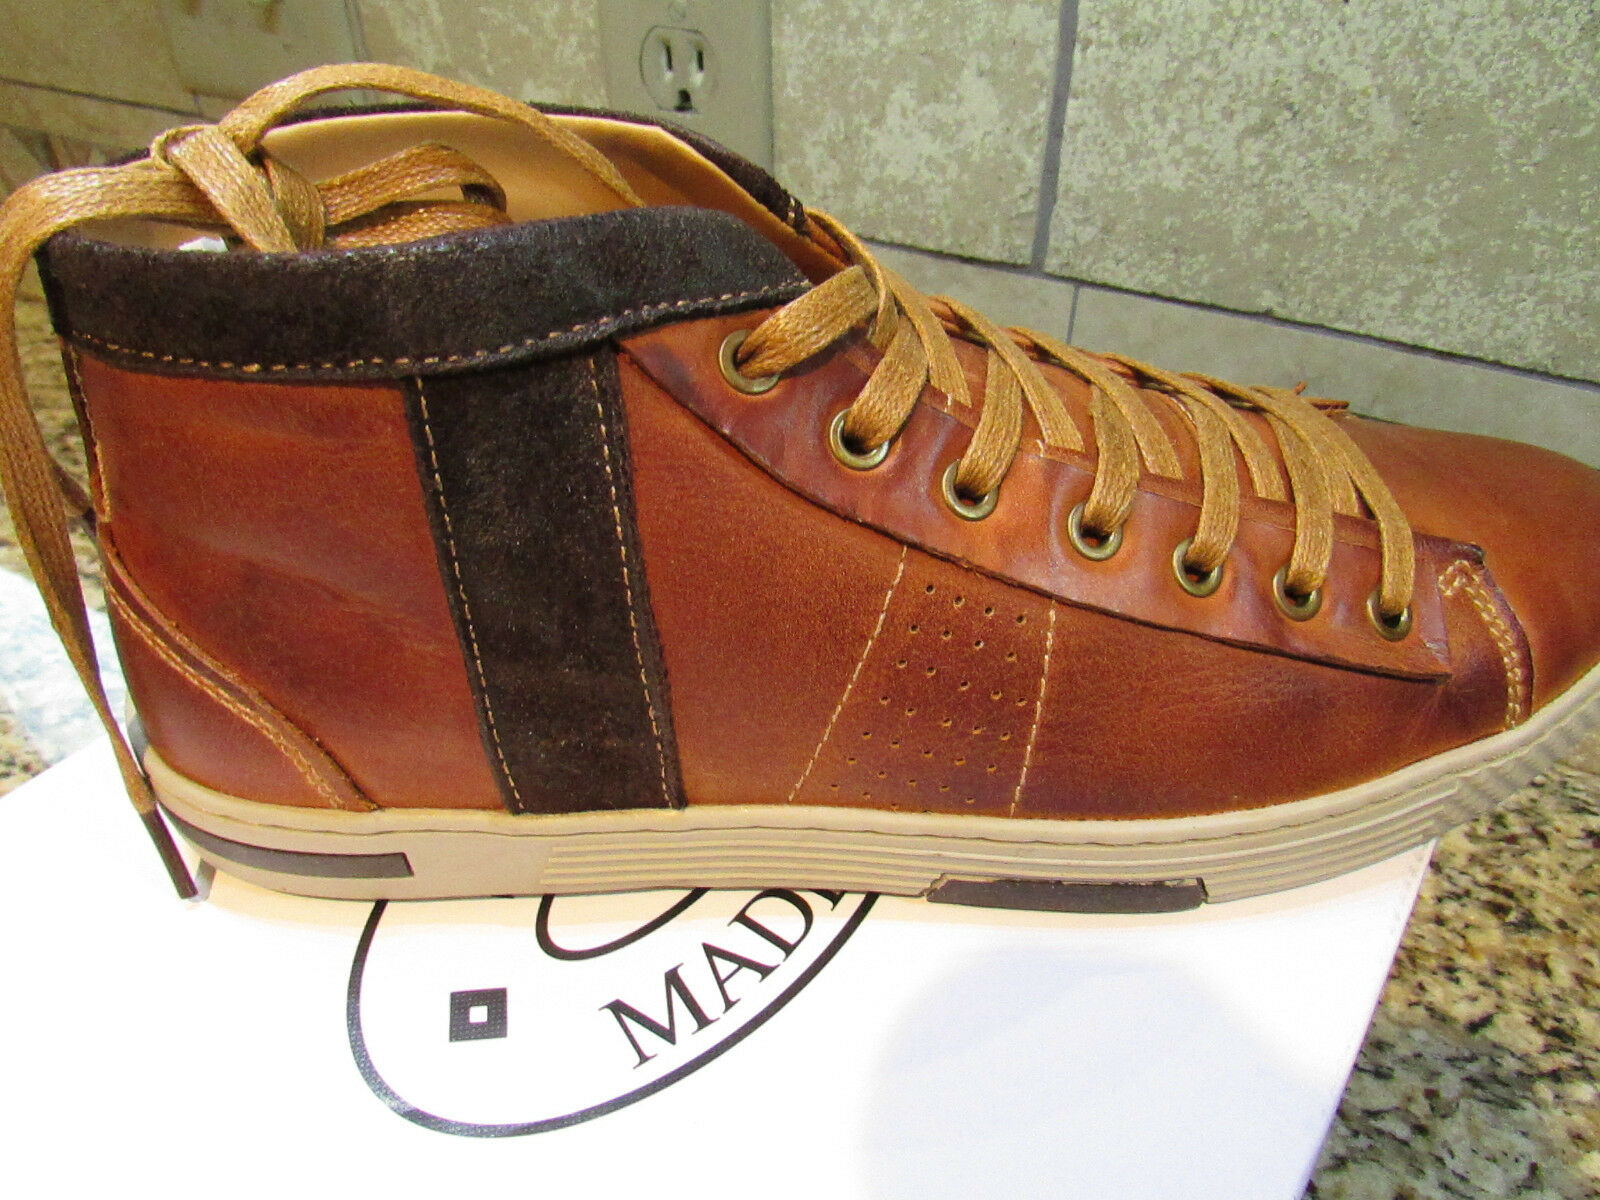 Scarpe casual da uomo  NEW STEVE MADDEN INFORMER COGNAC LEATHER LACE UP SHOES uomoS 11 FREE SHIP